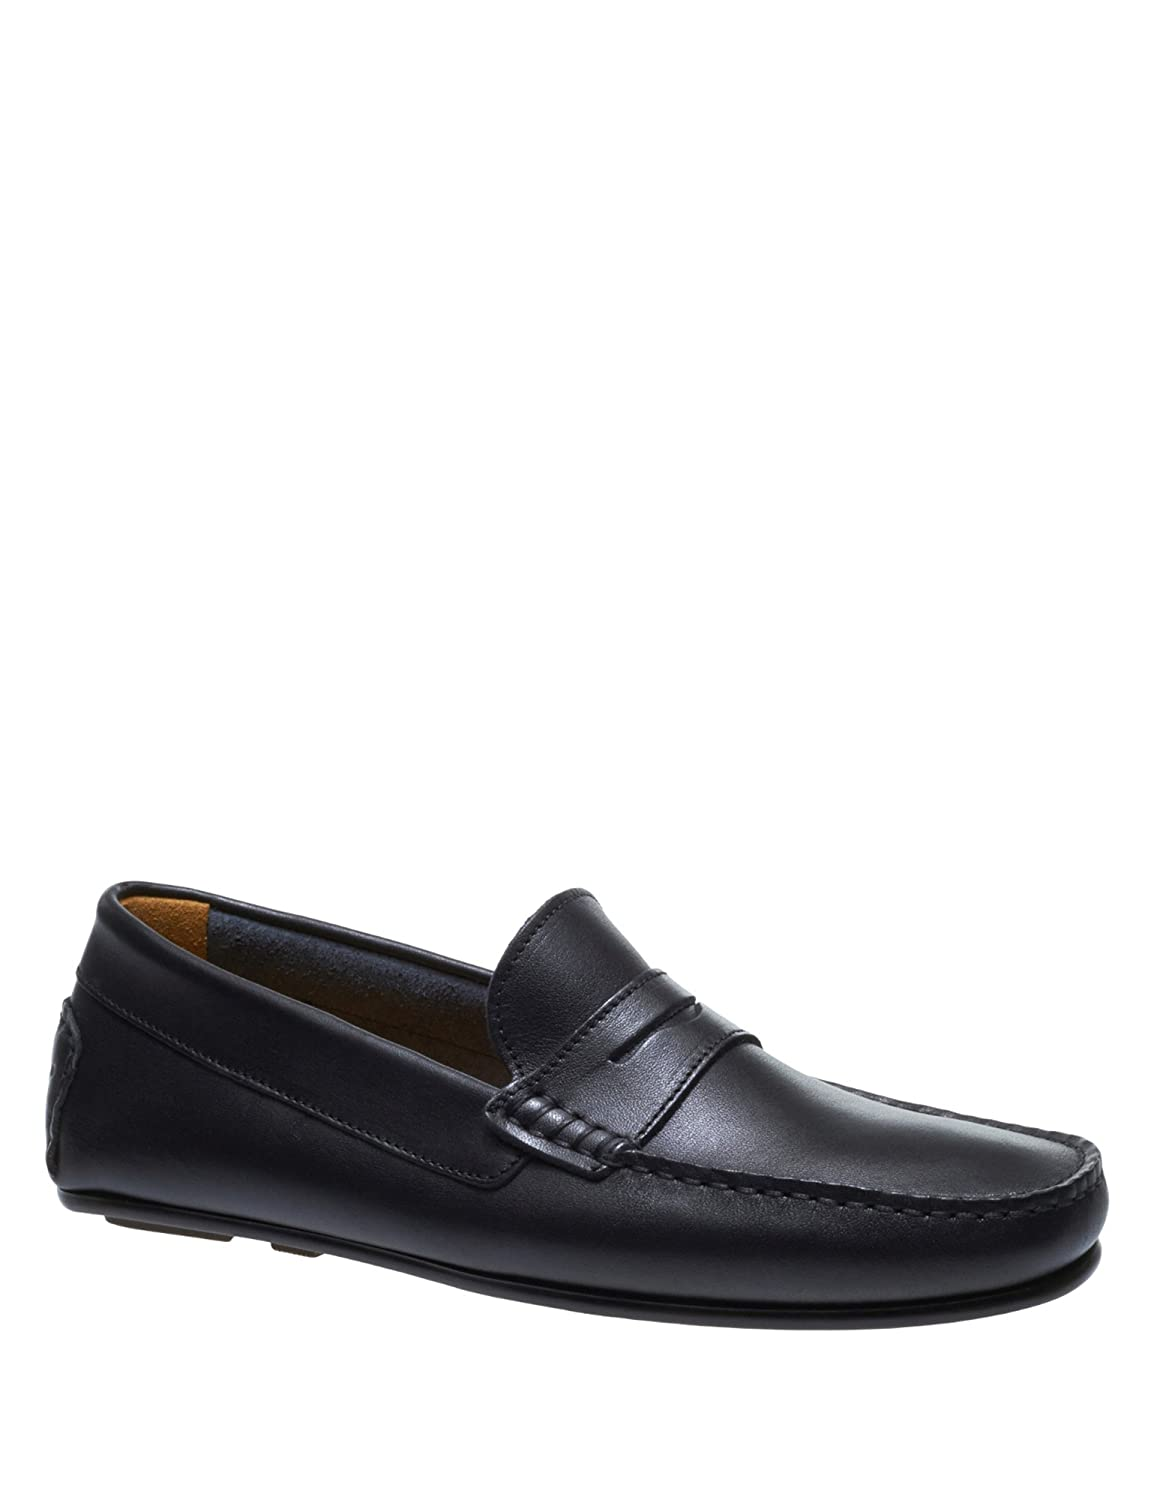 Sebago Men's Tirso Penny Leather Loafers schwarz Leather